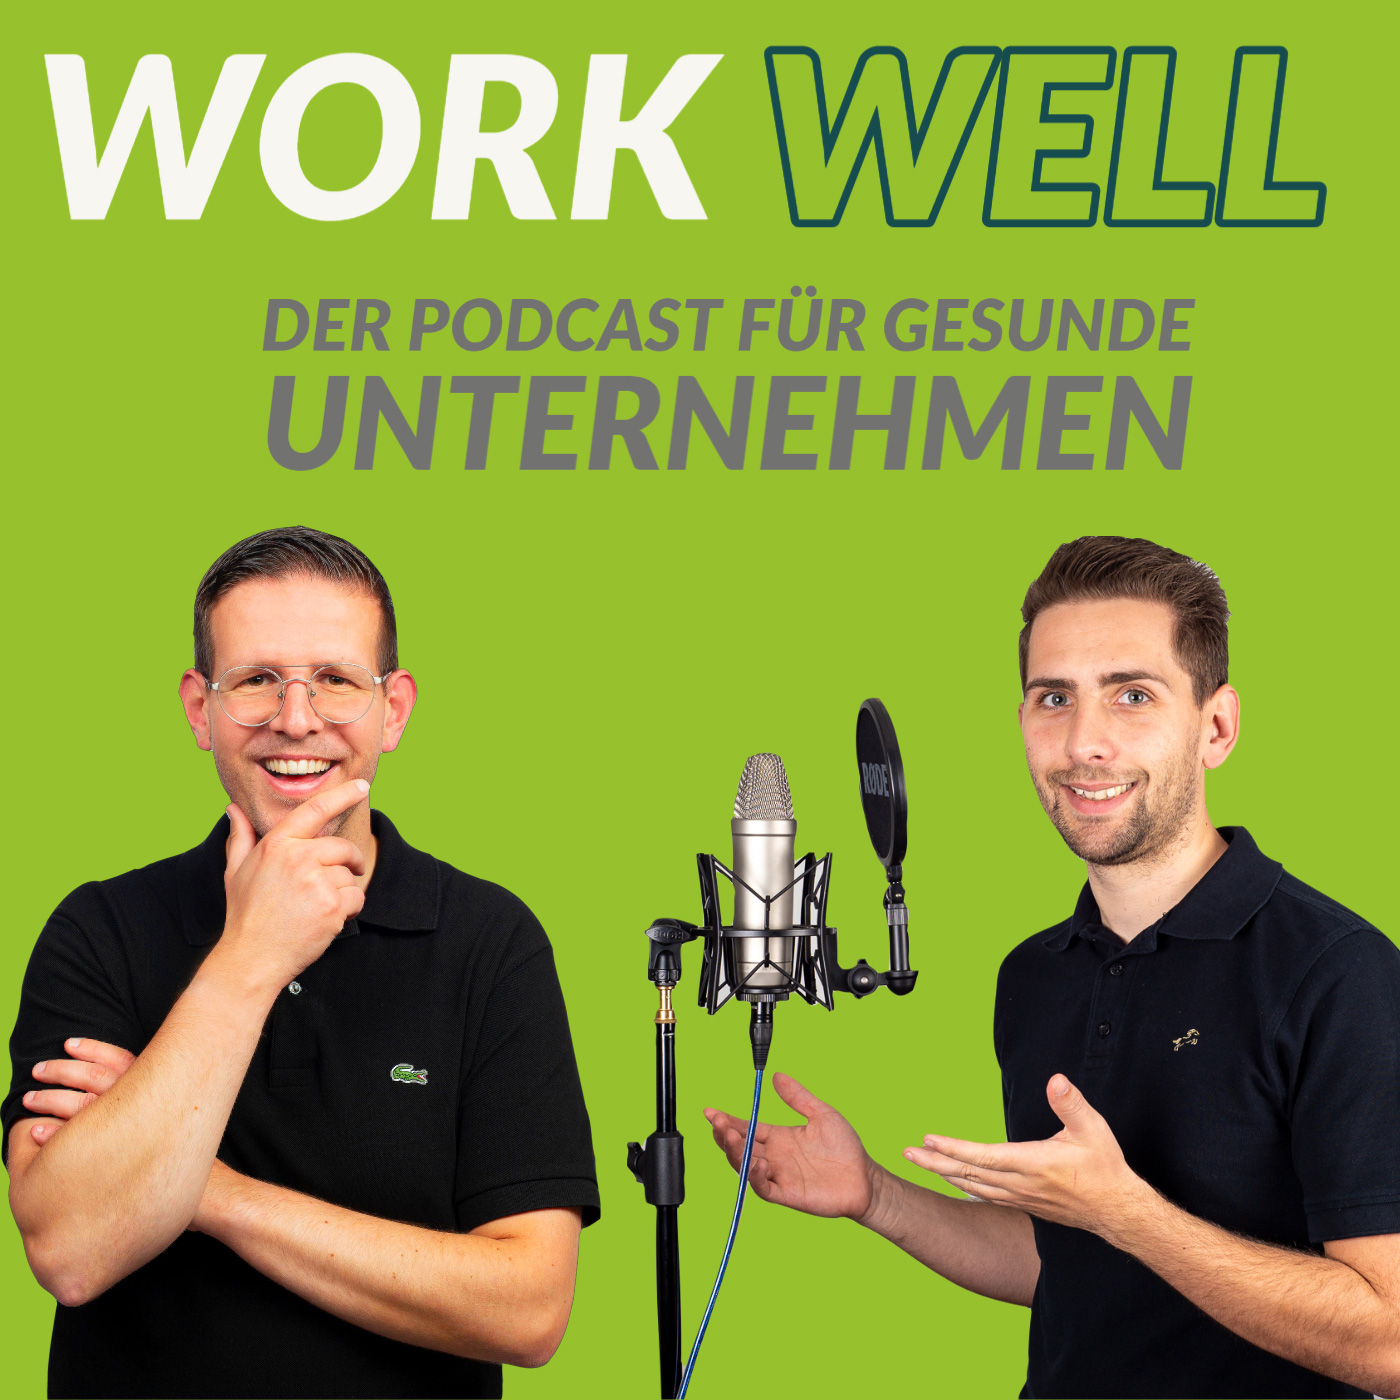 Work well Podcast